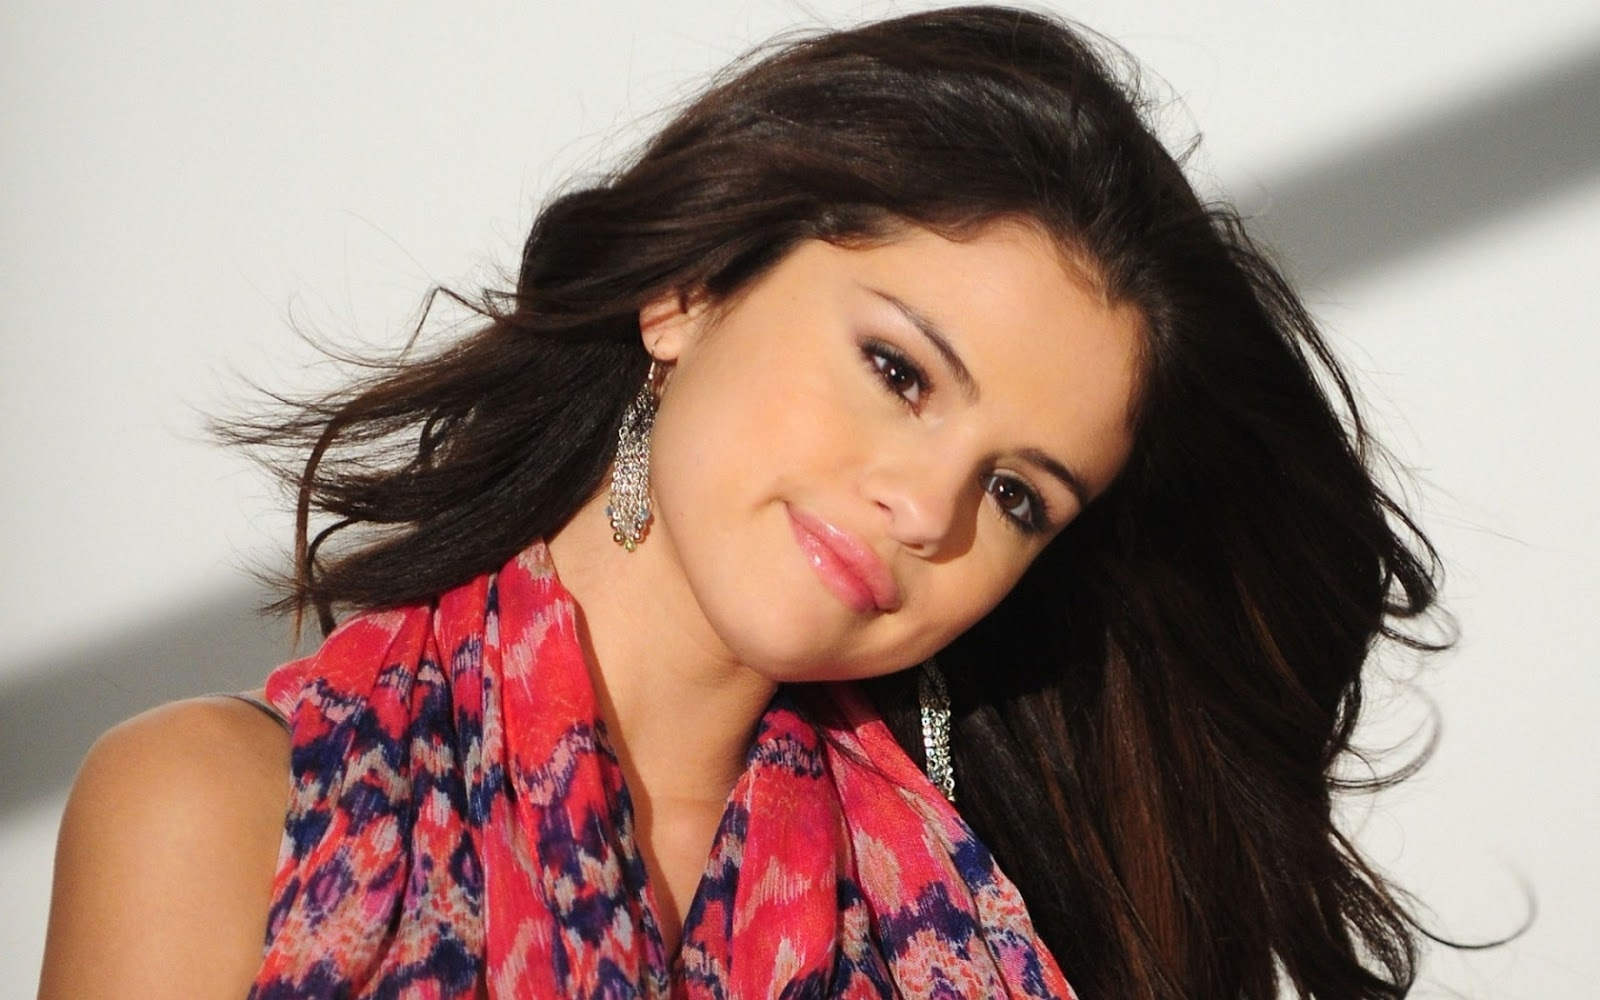 10 most popular selena gomez hd images full hd 1920×1080 for pc